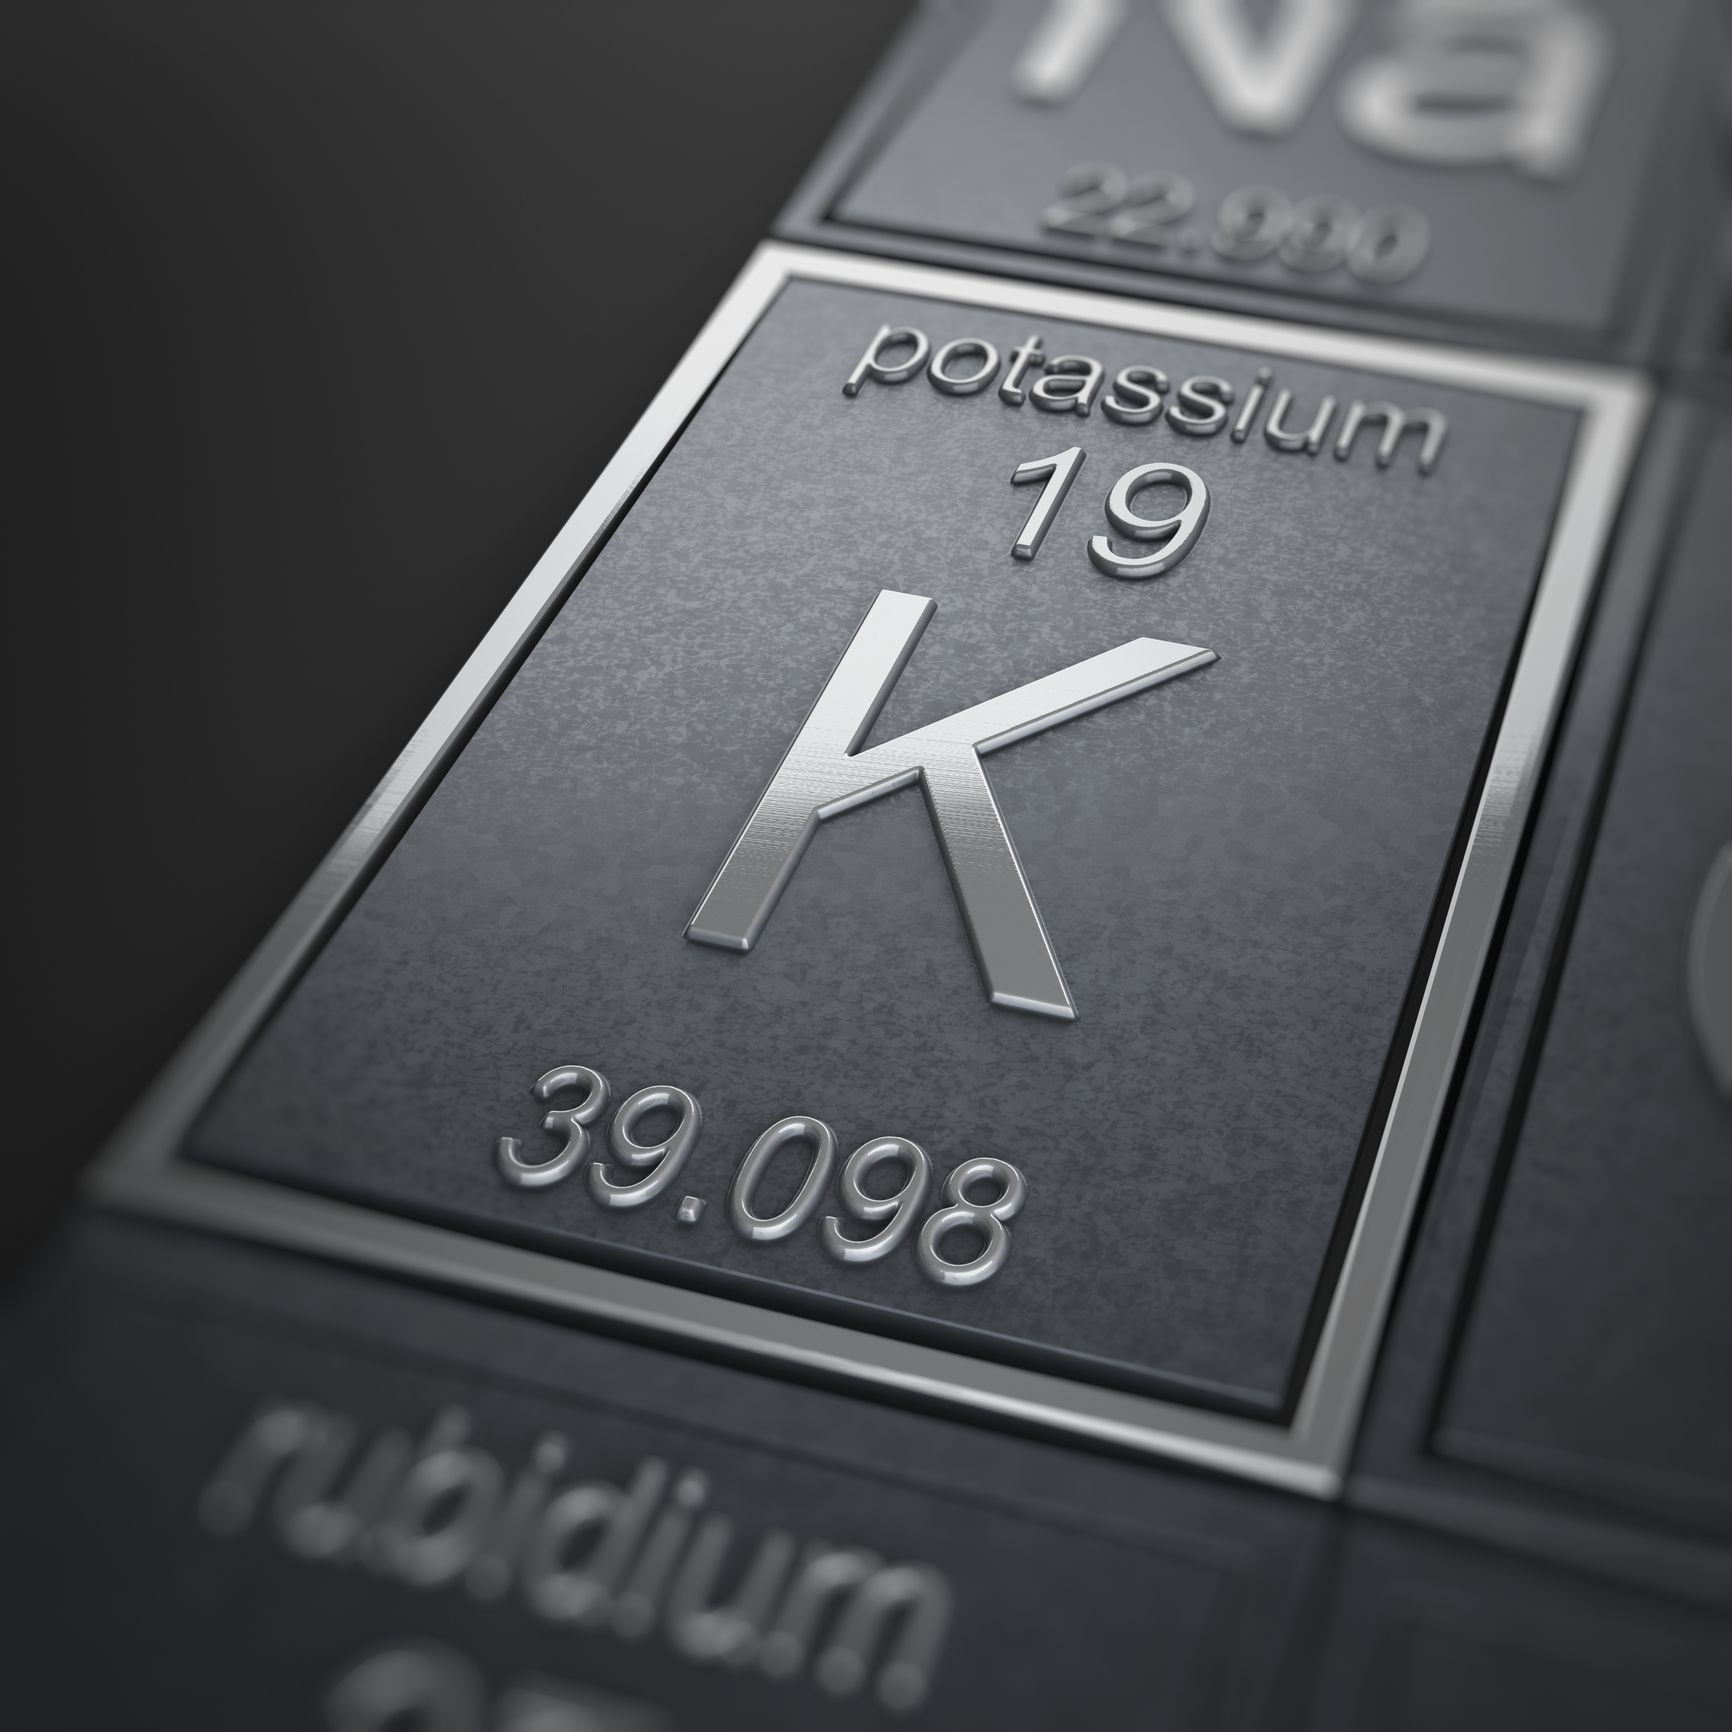 Get facts about the element potassium periodic table and chemistry get facts about the element potassium periodic tablebedroom gamestrikefo Image collections